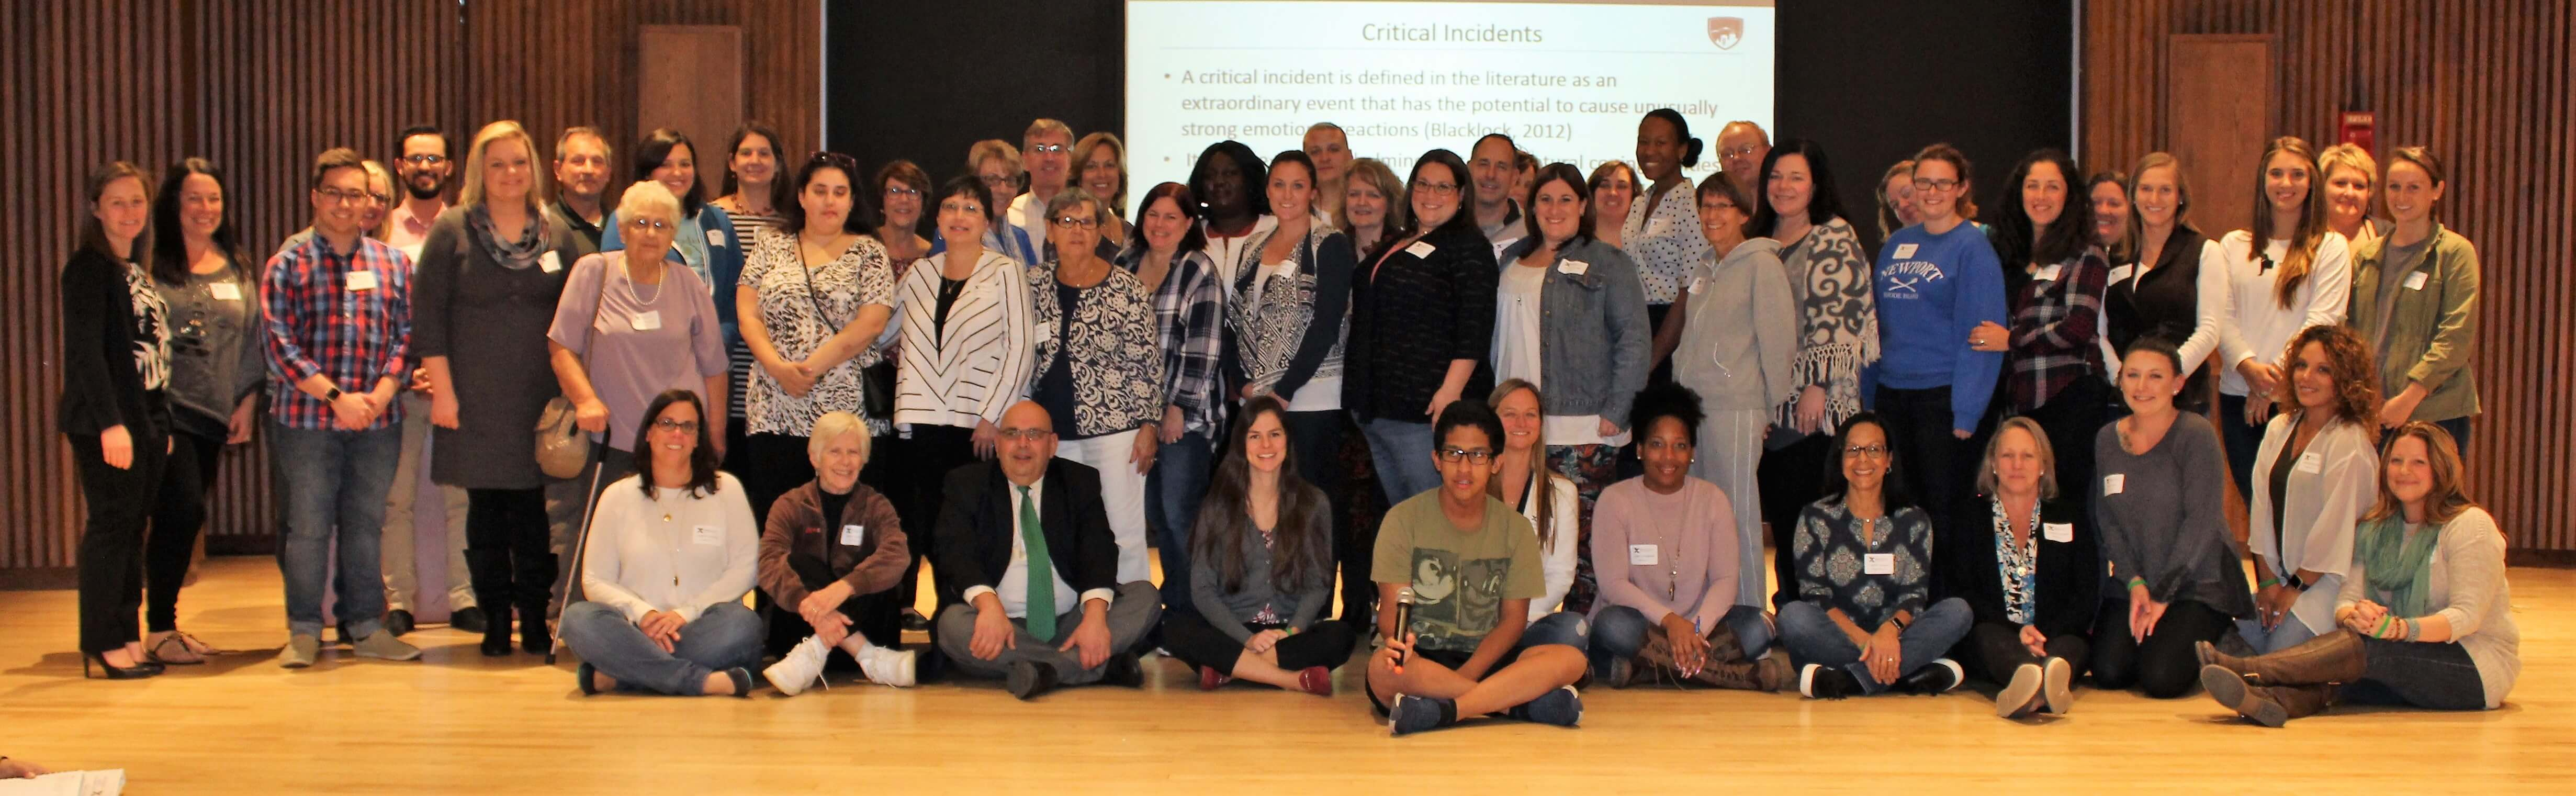 Connecticut Group Conference 2017 group